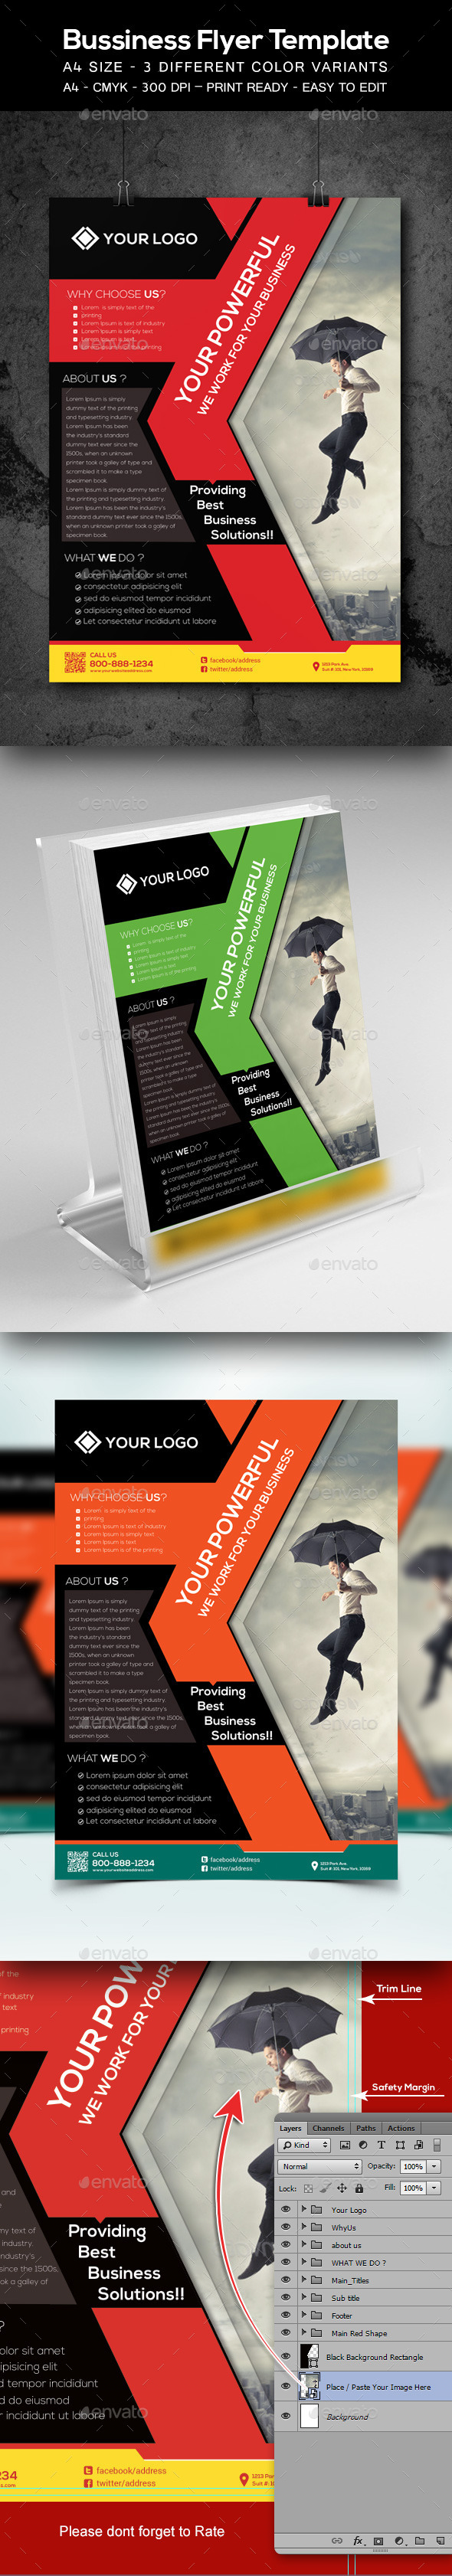 Corporate  Business  Flyer Template - Corporate Business Cards